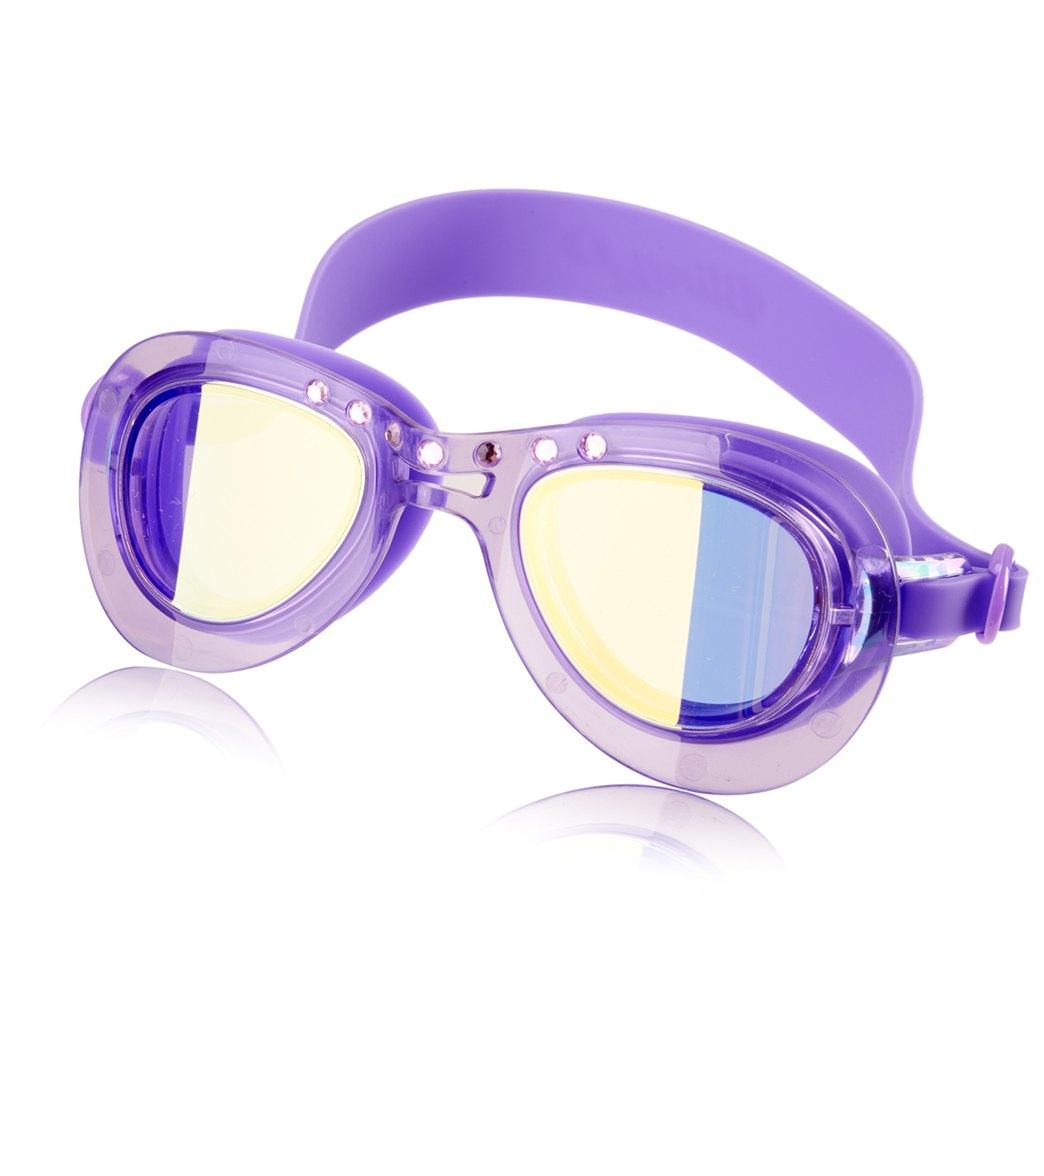 2ffaae350751 Bling2O Kids' Bling Bans Swim Goggle at SwimOutlet.com